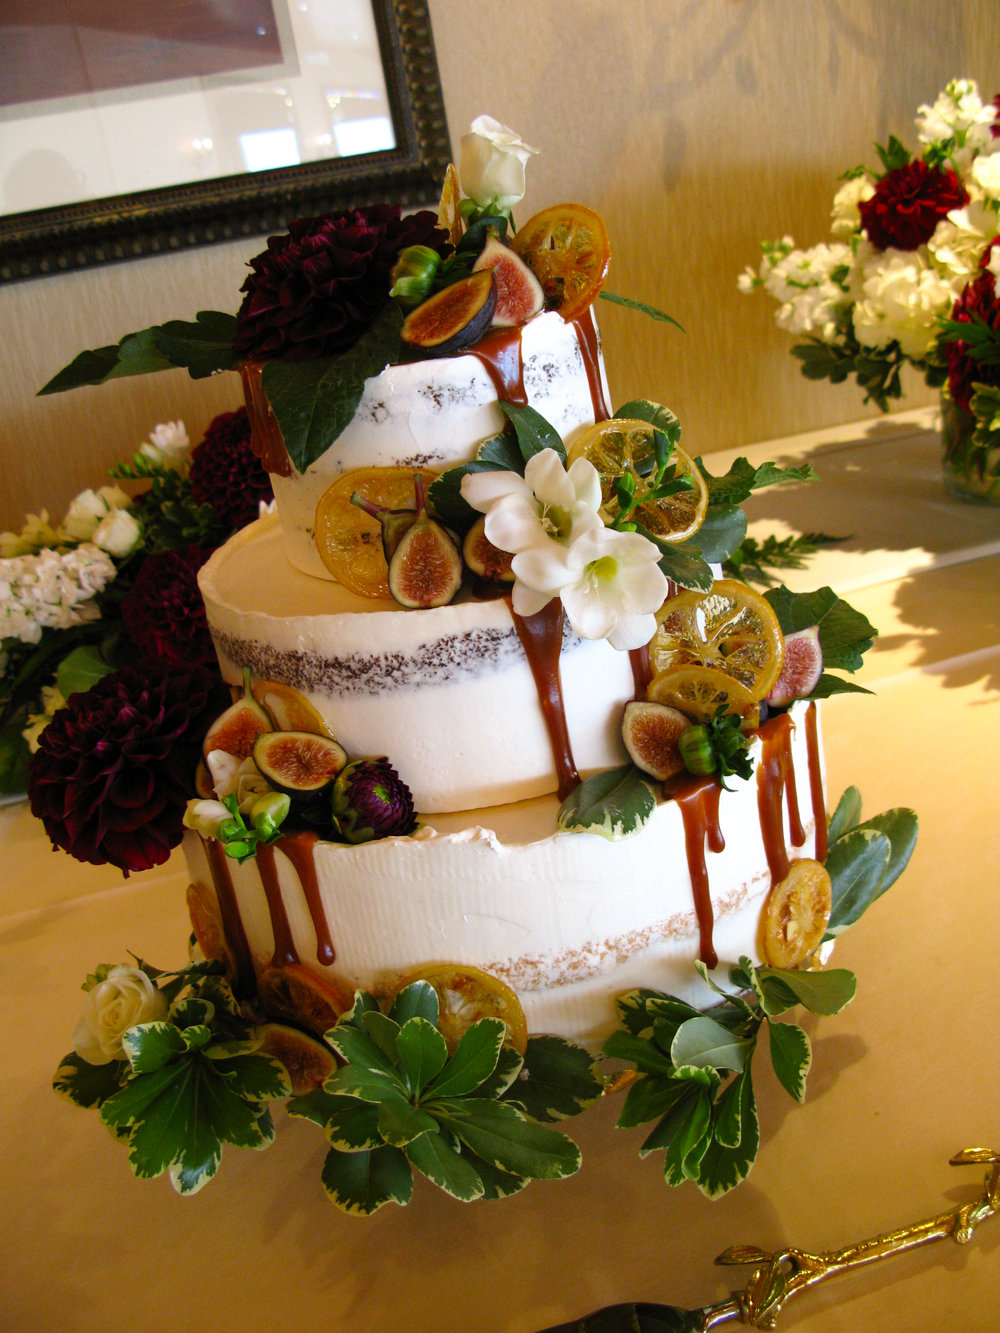 Carrot cake, chocolate cake, lemon cake with blackberries; decorated with candied lemon and figs